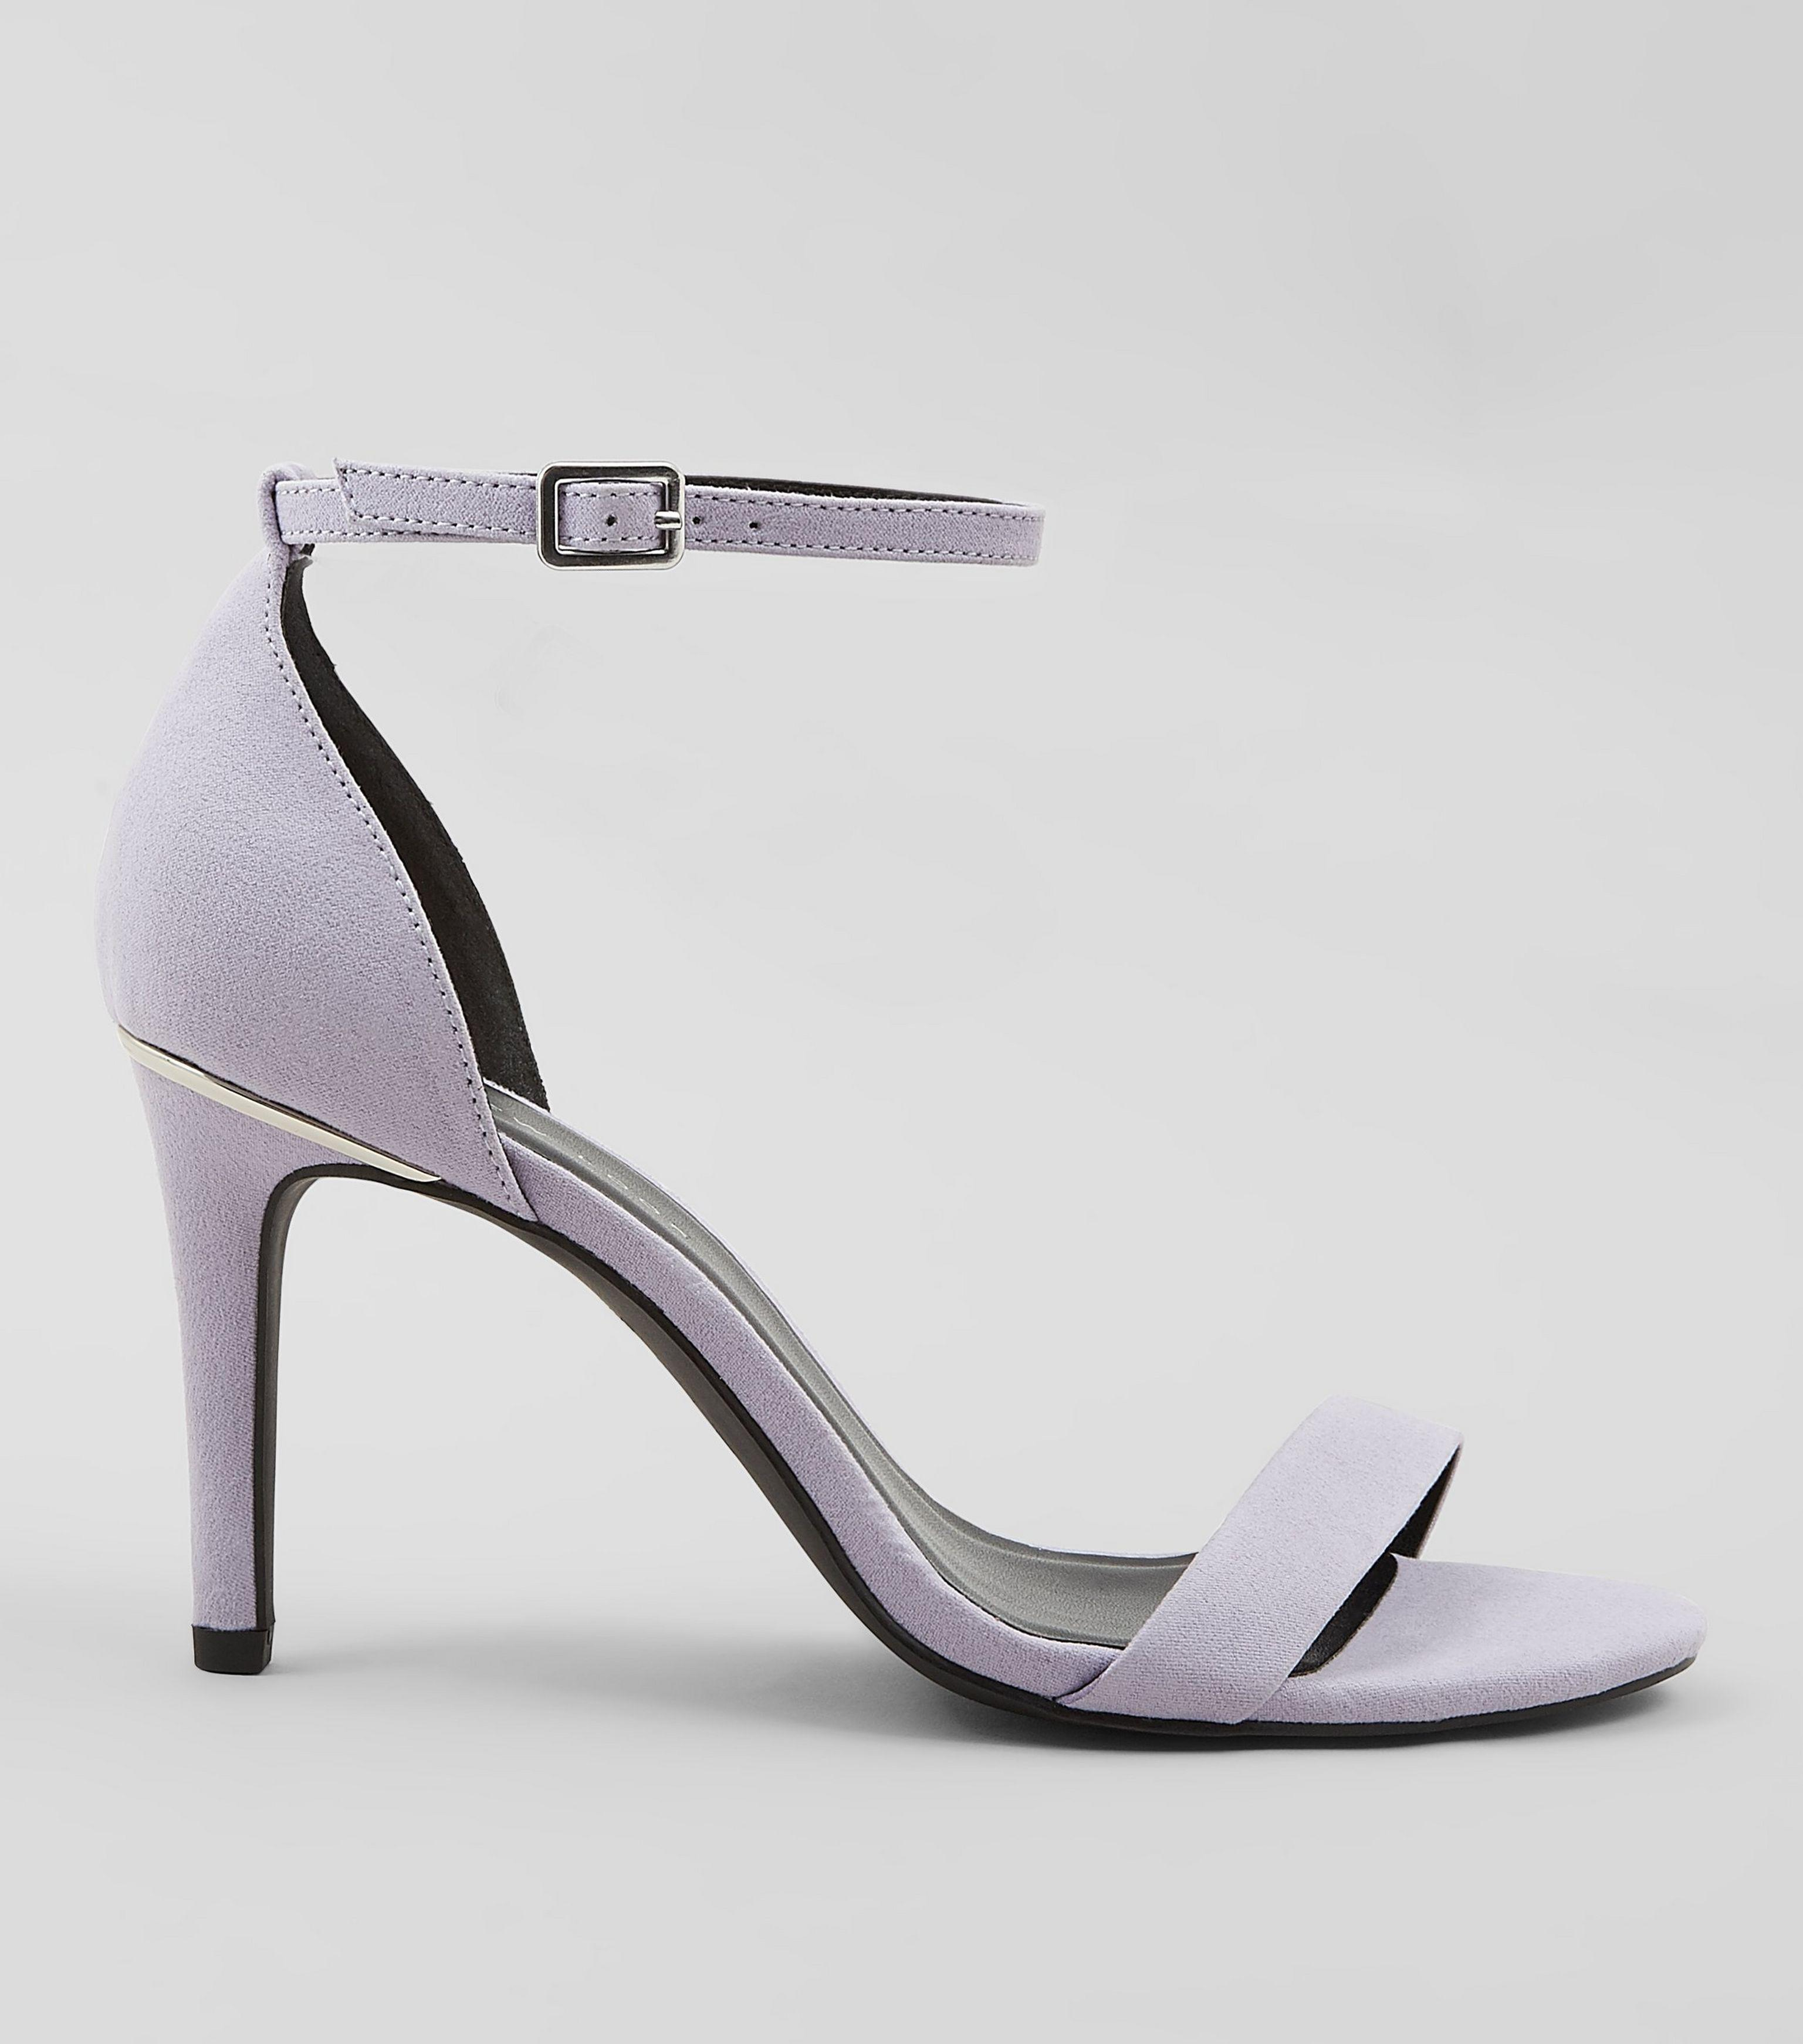 65eec1a972d8 New Look Wide Fit Lilac Suedette Metal Trim Ankle Strap Heels in ...